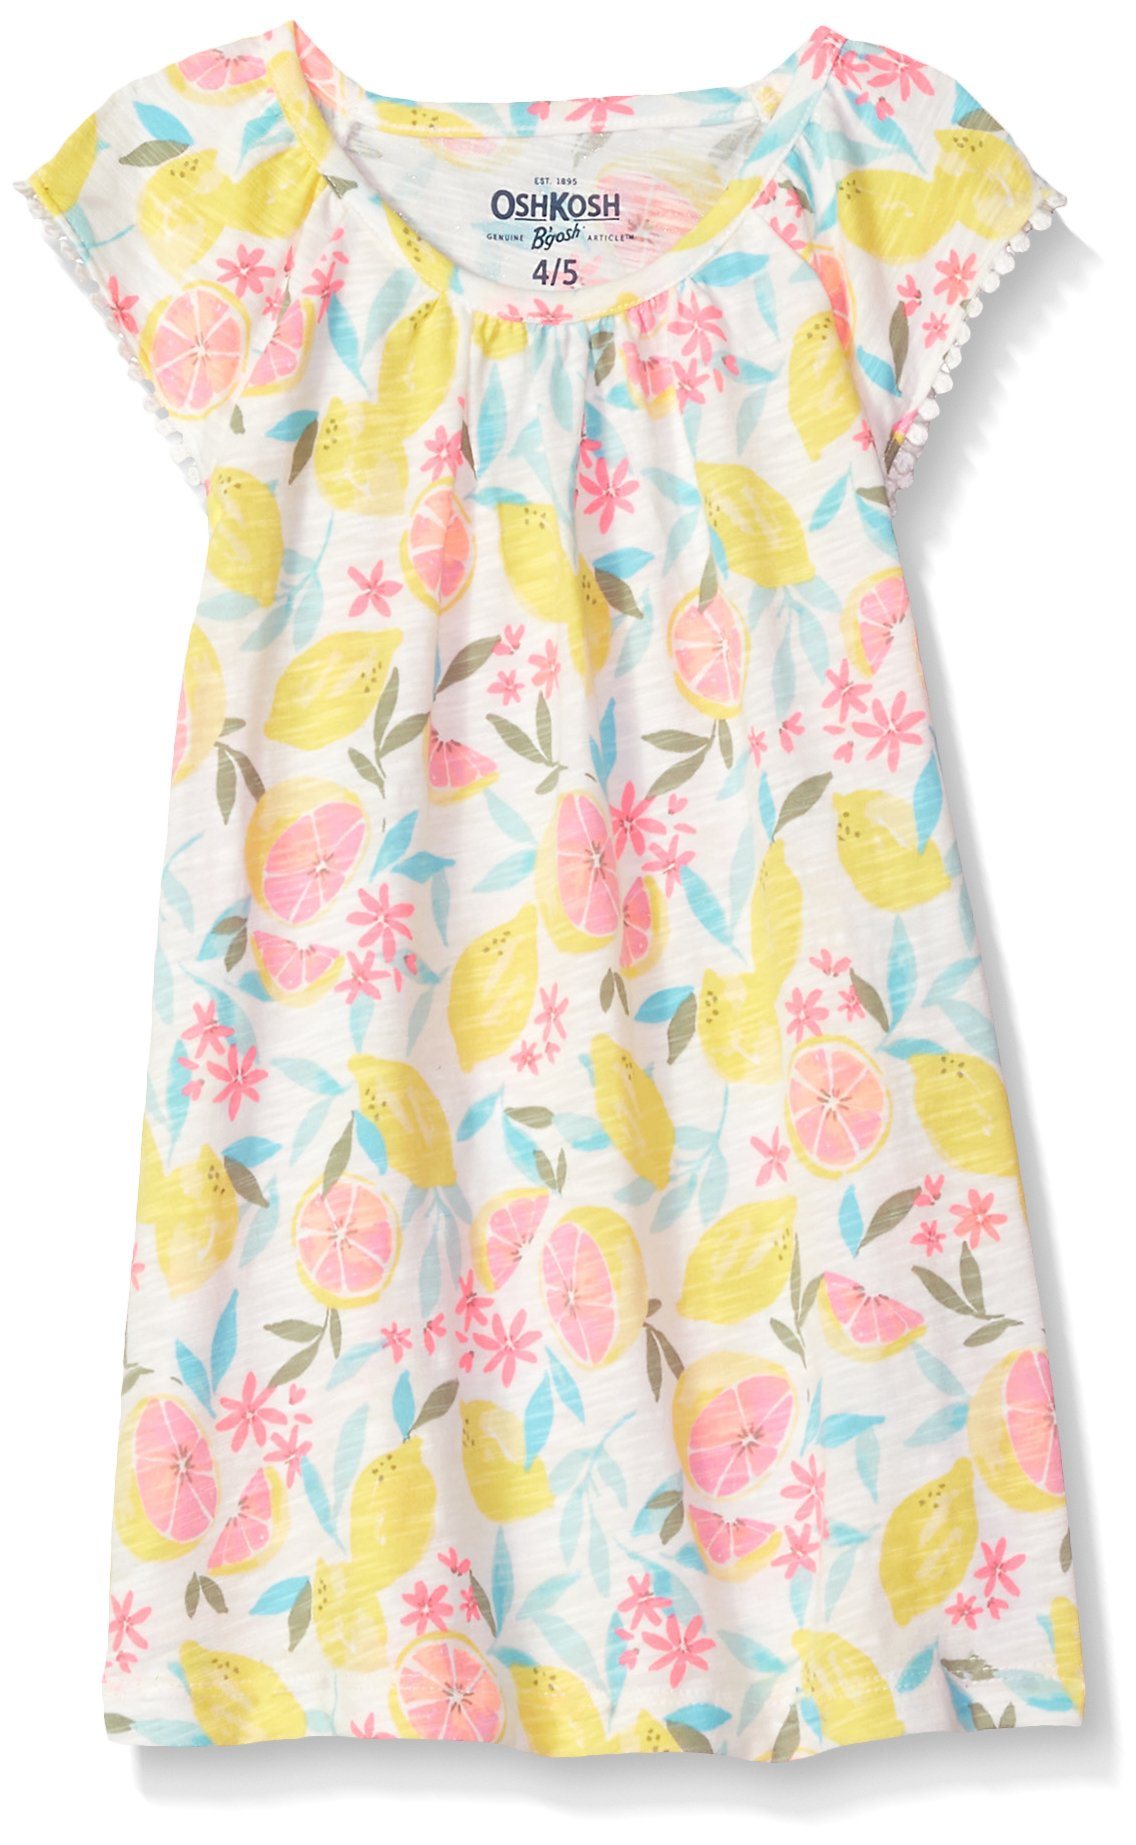 Osh Kosh Girls' Kids Fashion Tops, Lemon Flowers, 6-6X